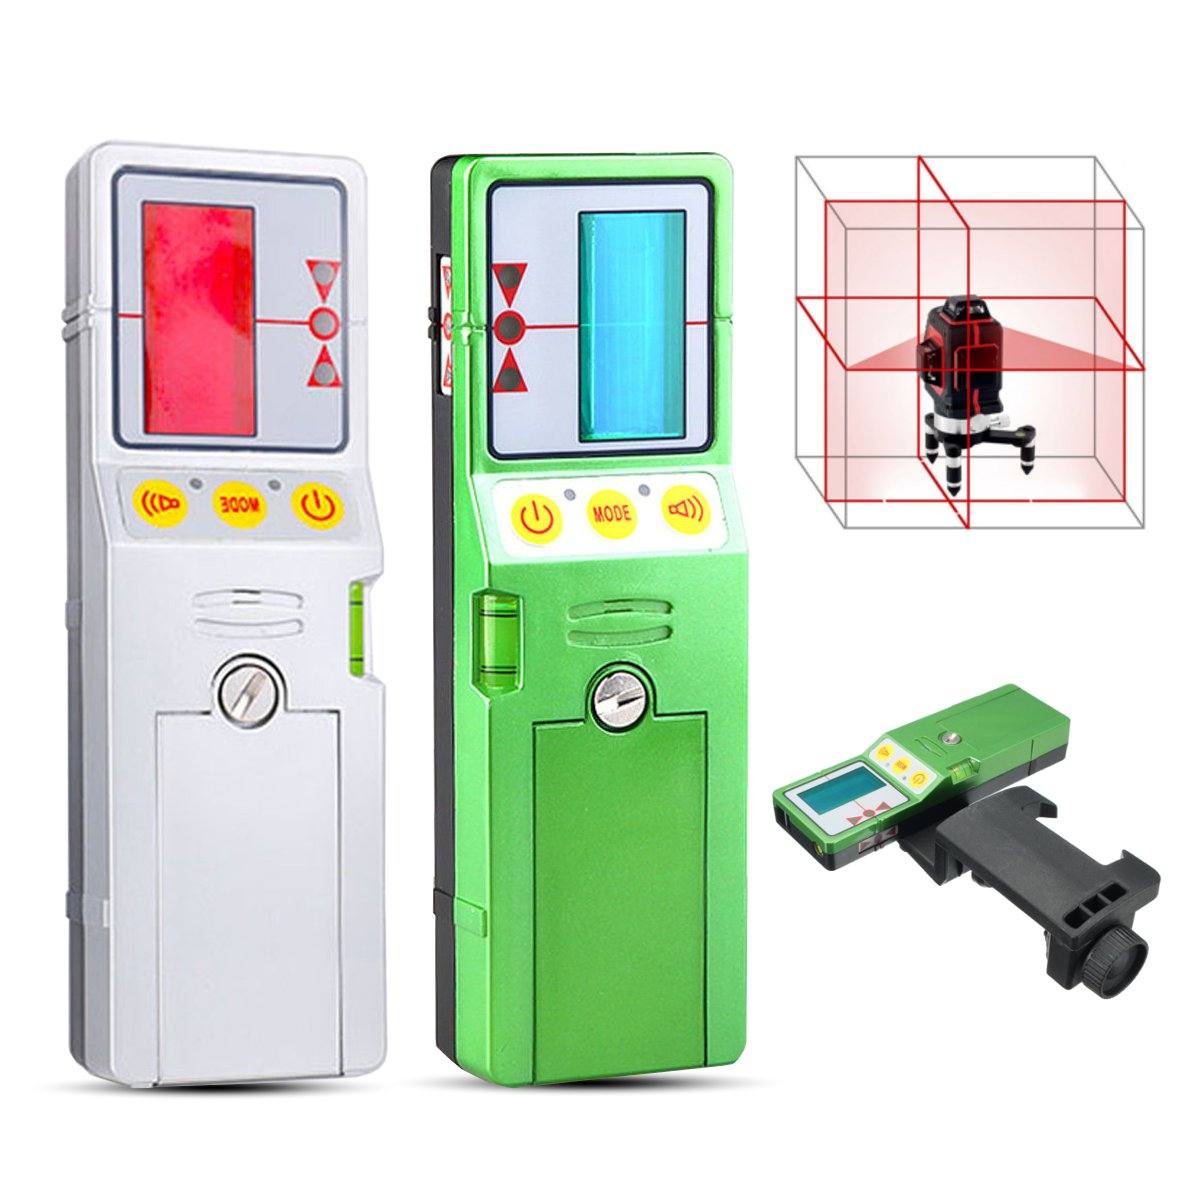 12 Line 3D Laser Level Detector Receiver Red Green Line Vertical with Clamp FD-9/FD-9G kapro clamp type high precision infrared light level laser level line marking the investment line